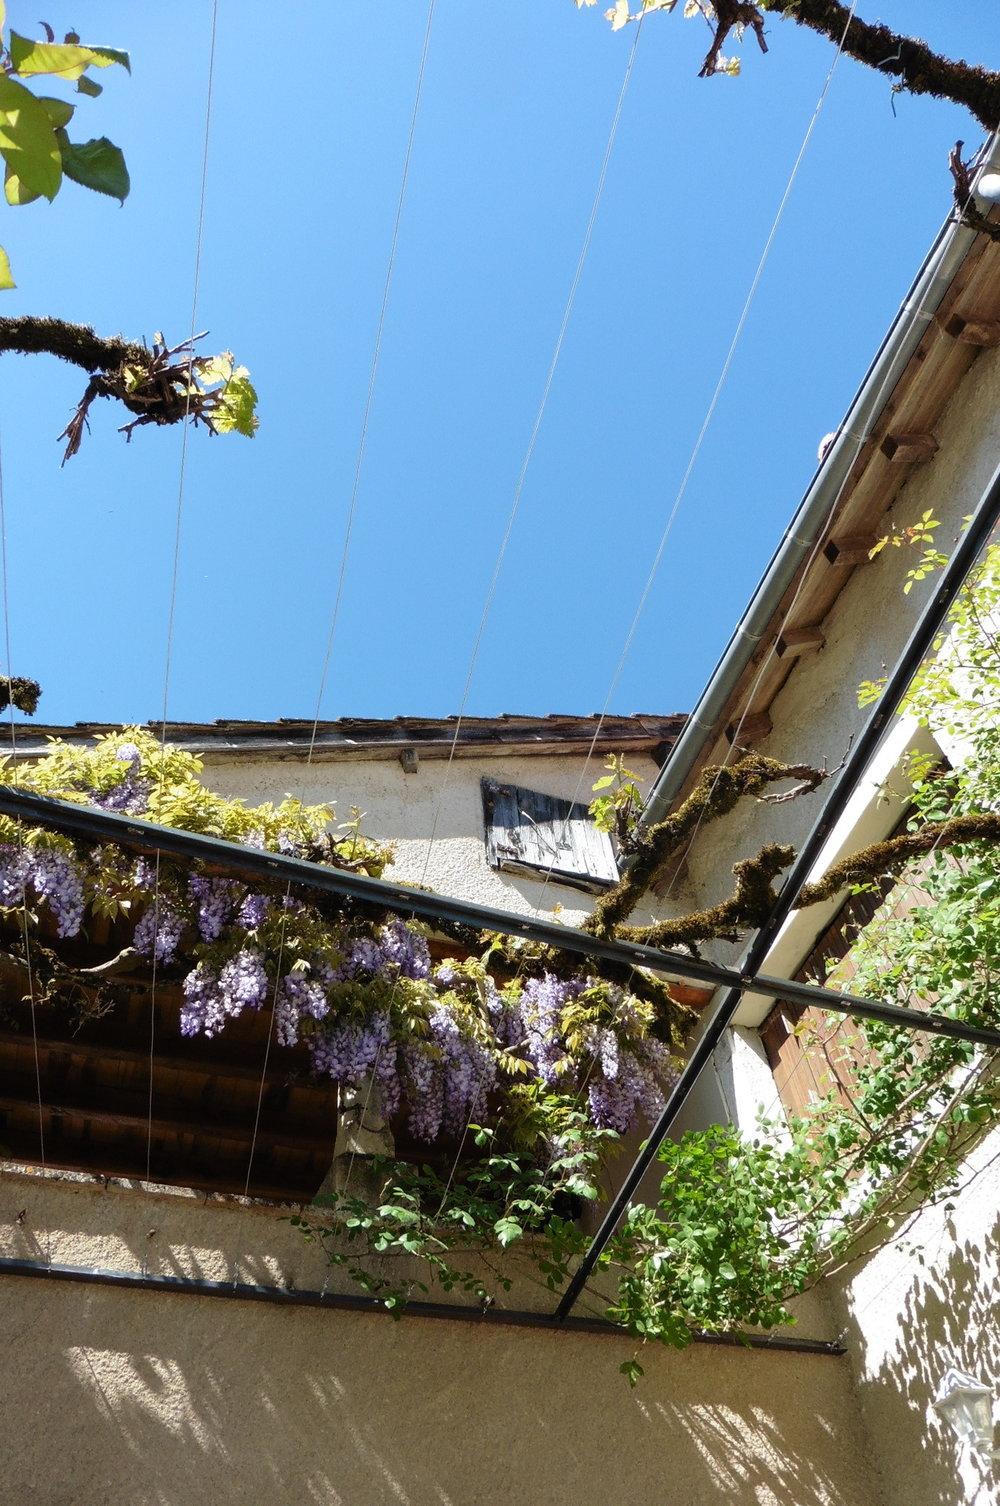 View from below of the pergola, looking up to the wisteria.